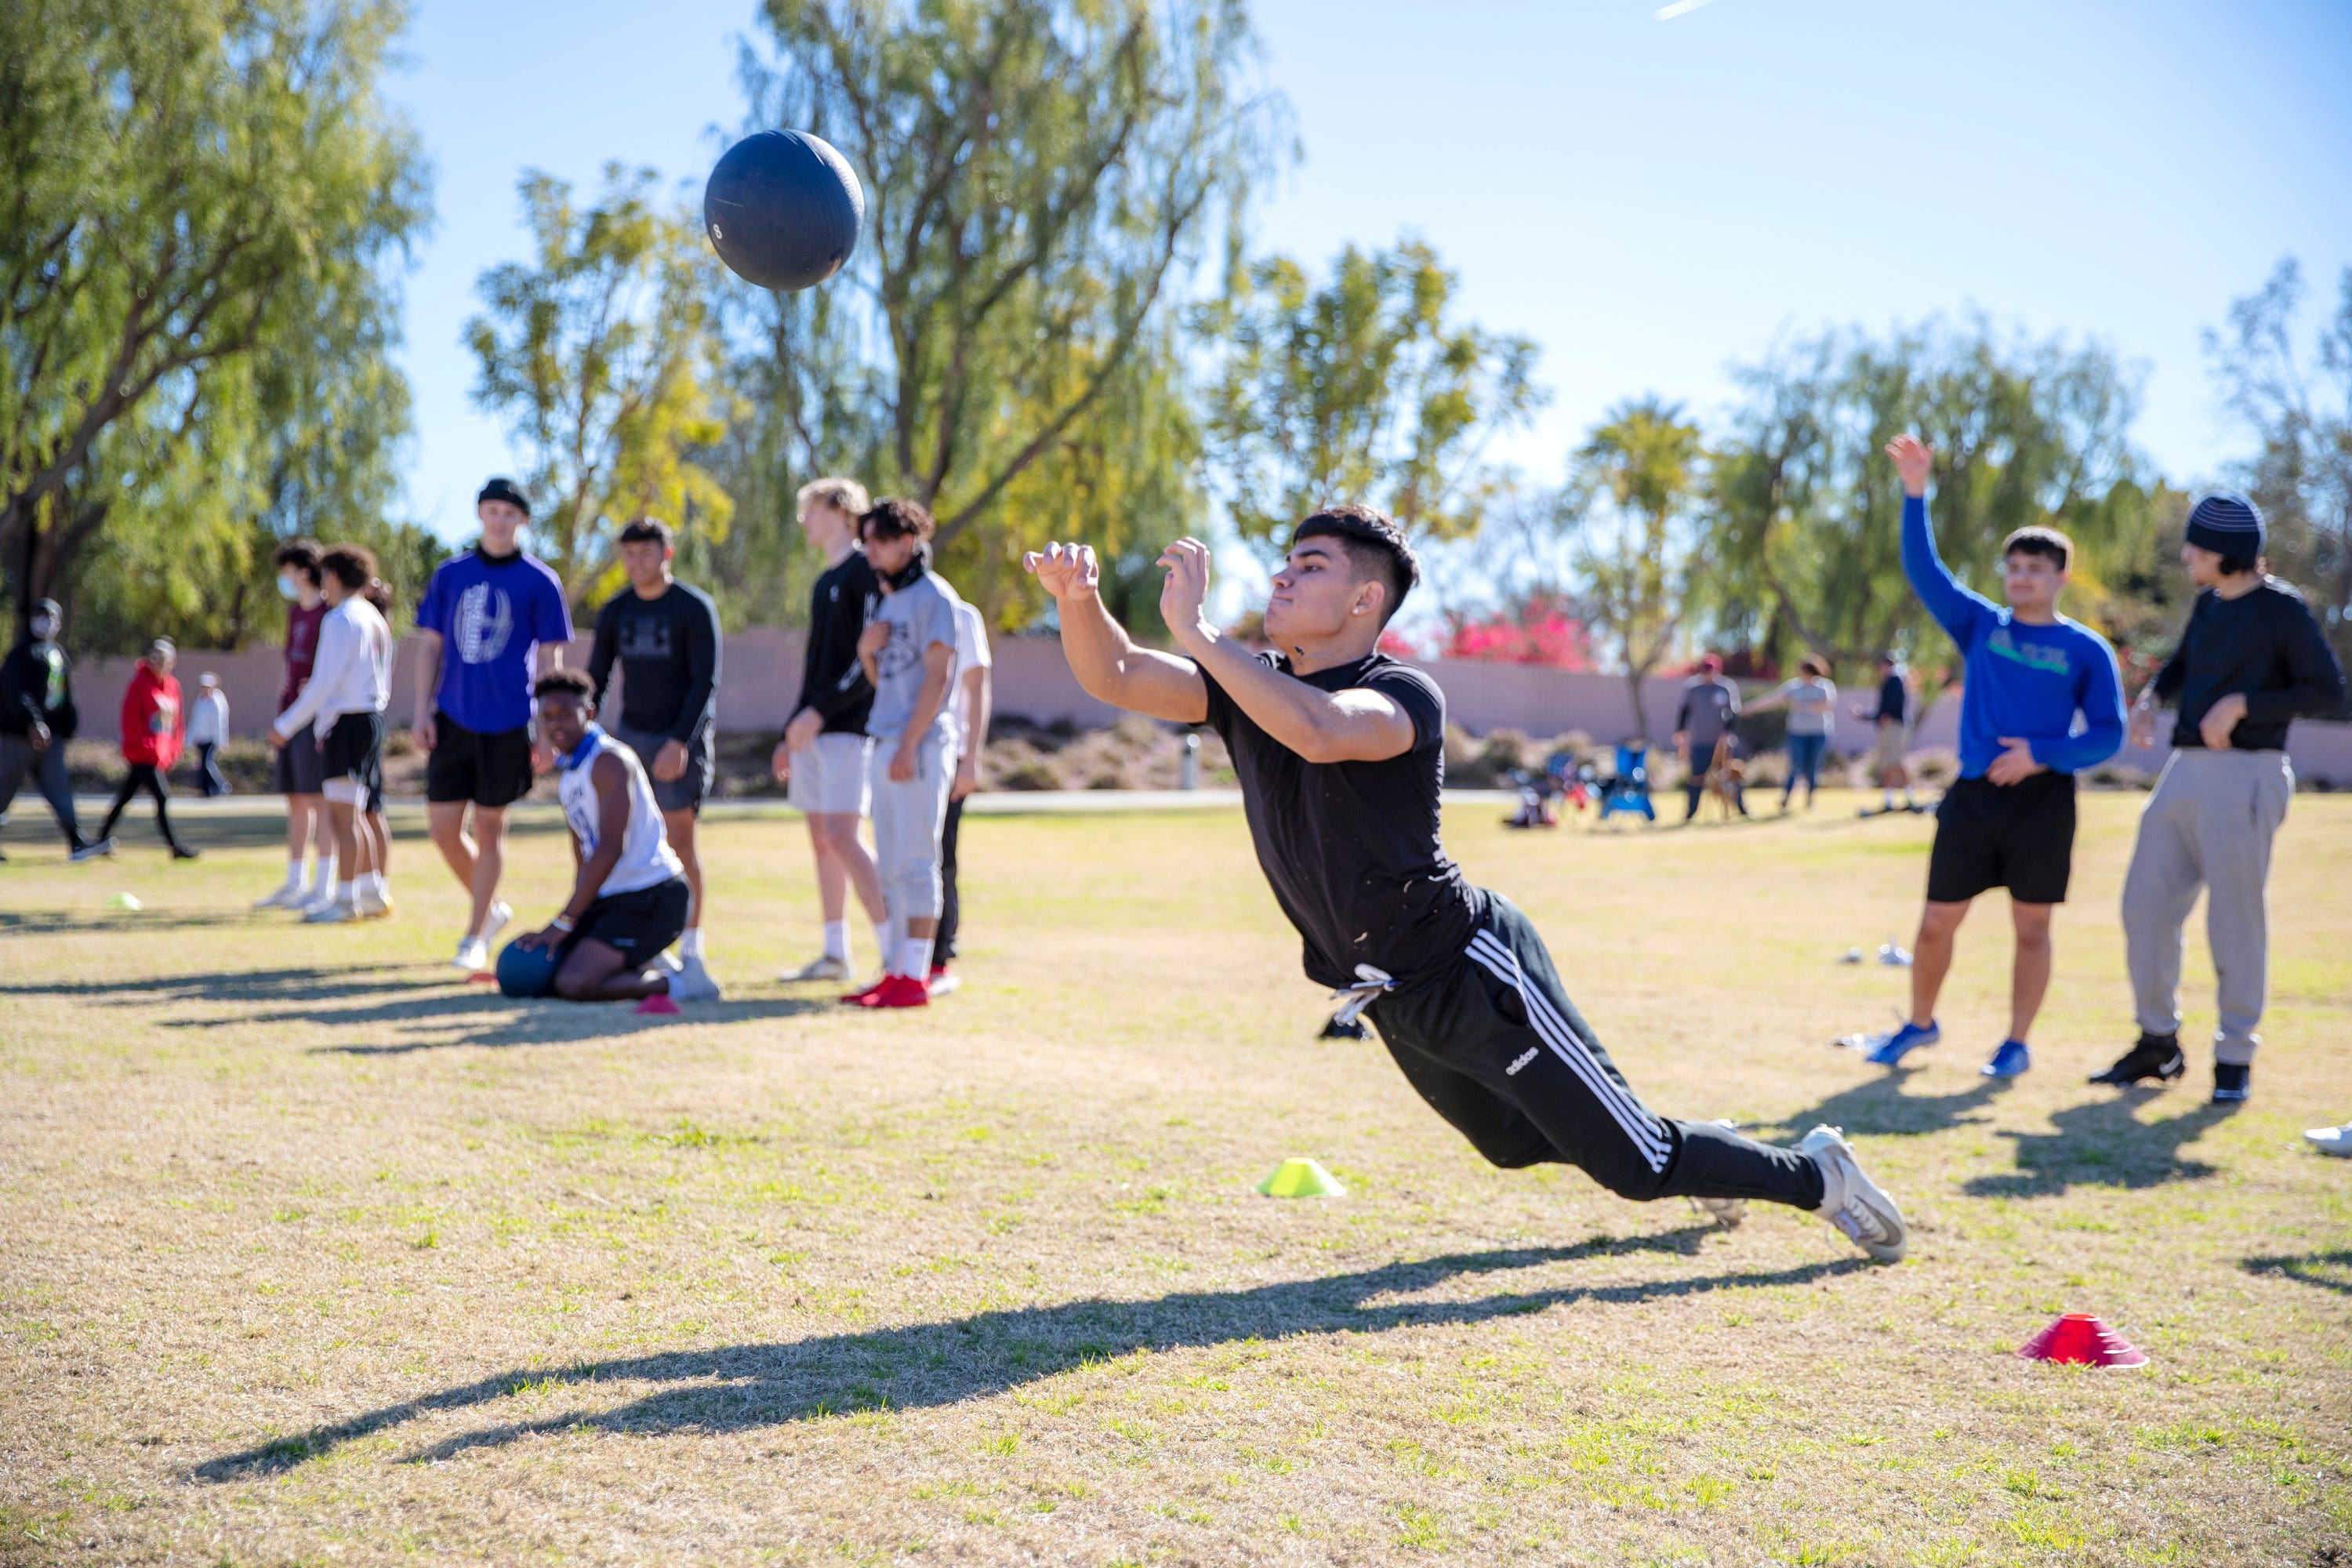 High school athletes throw a medicine ball to gauge explosiveness during a combine exercise during tryouts for the Desert Diablos club football team at La Quinta Park in La Quinta, Calif., on January 30, 2021.